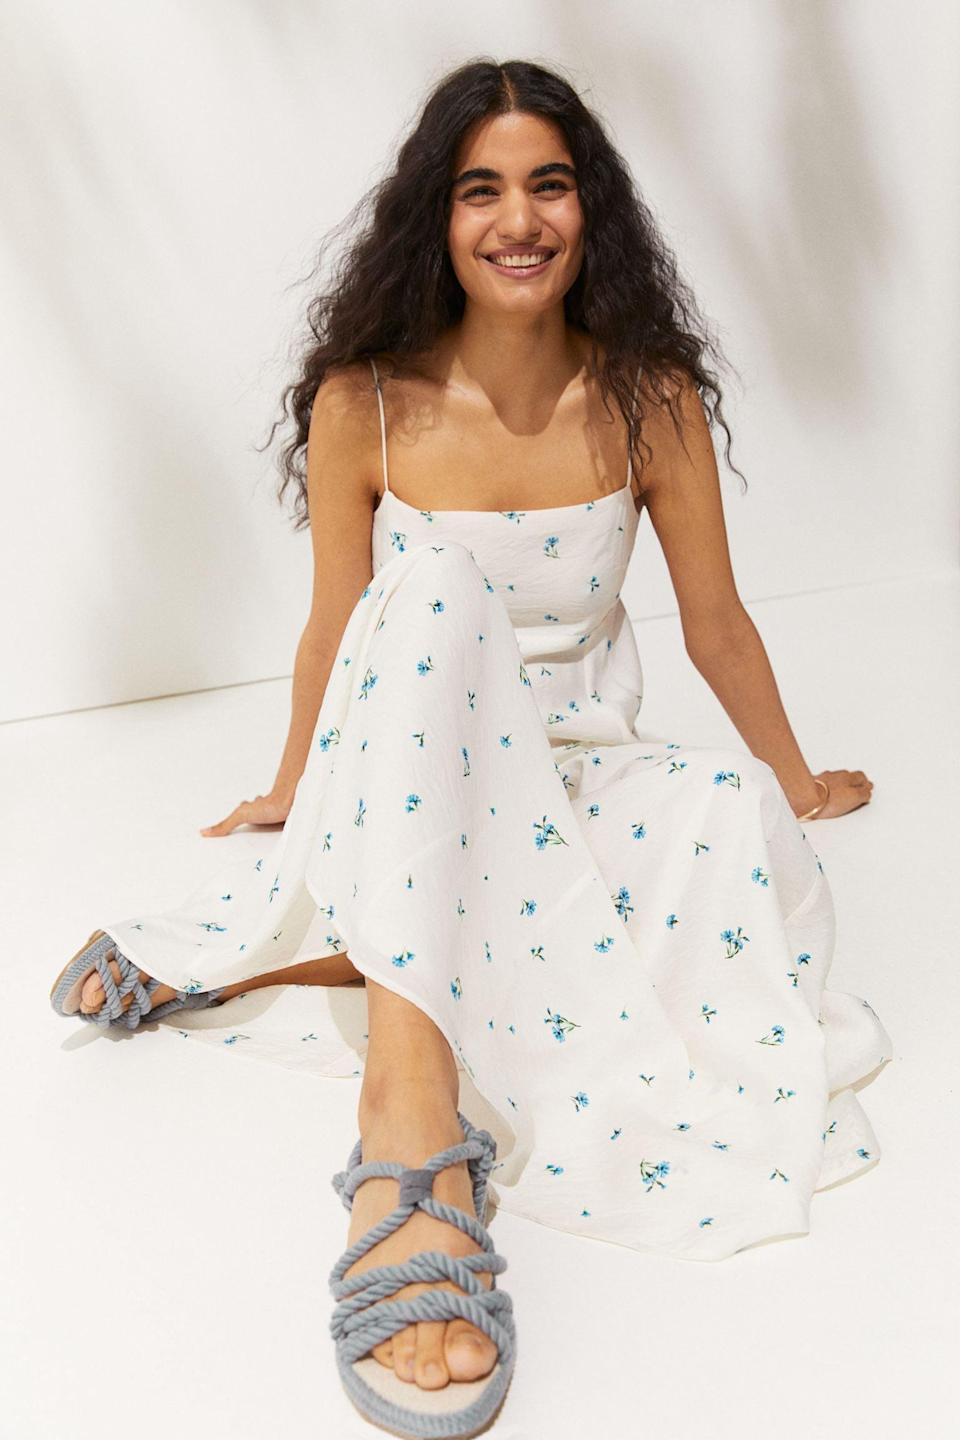 <p>This <span>Voluminous Maxi Dress</span> ($35) is waiting to be worn to the next rooftop party or park picnic. The flared skirt gives it an airy silhouette, while the print makes it summery and fun.</p>